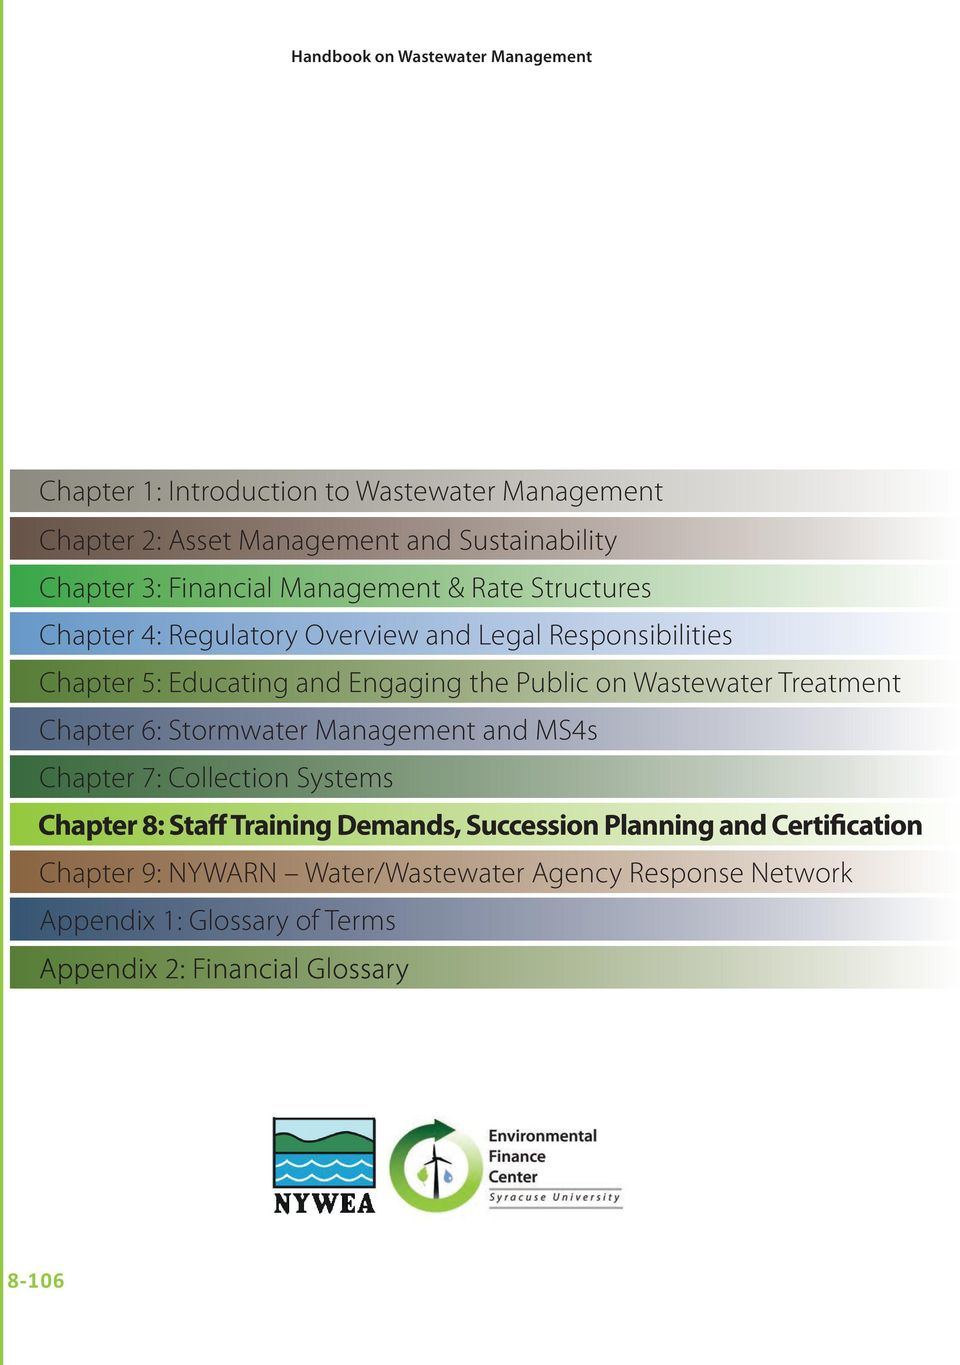 Wastewater Treatment Chapter 6: Stormwater Management and MS4s Chapter 7: Collection Systems Chapter 8: Staff Training Demands, Succession